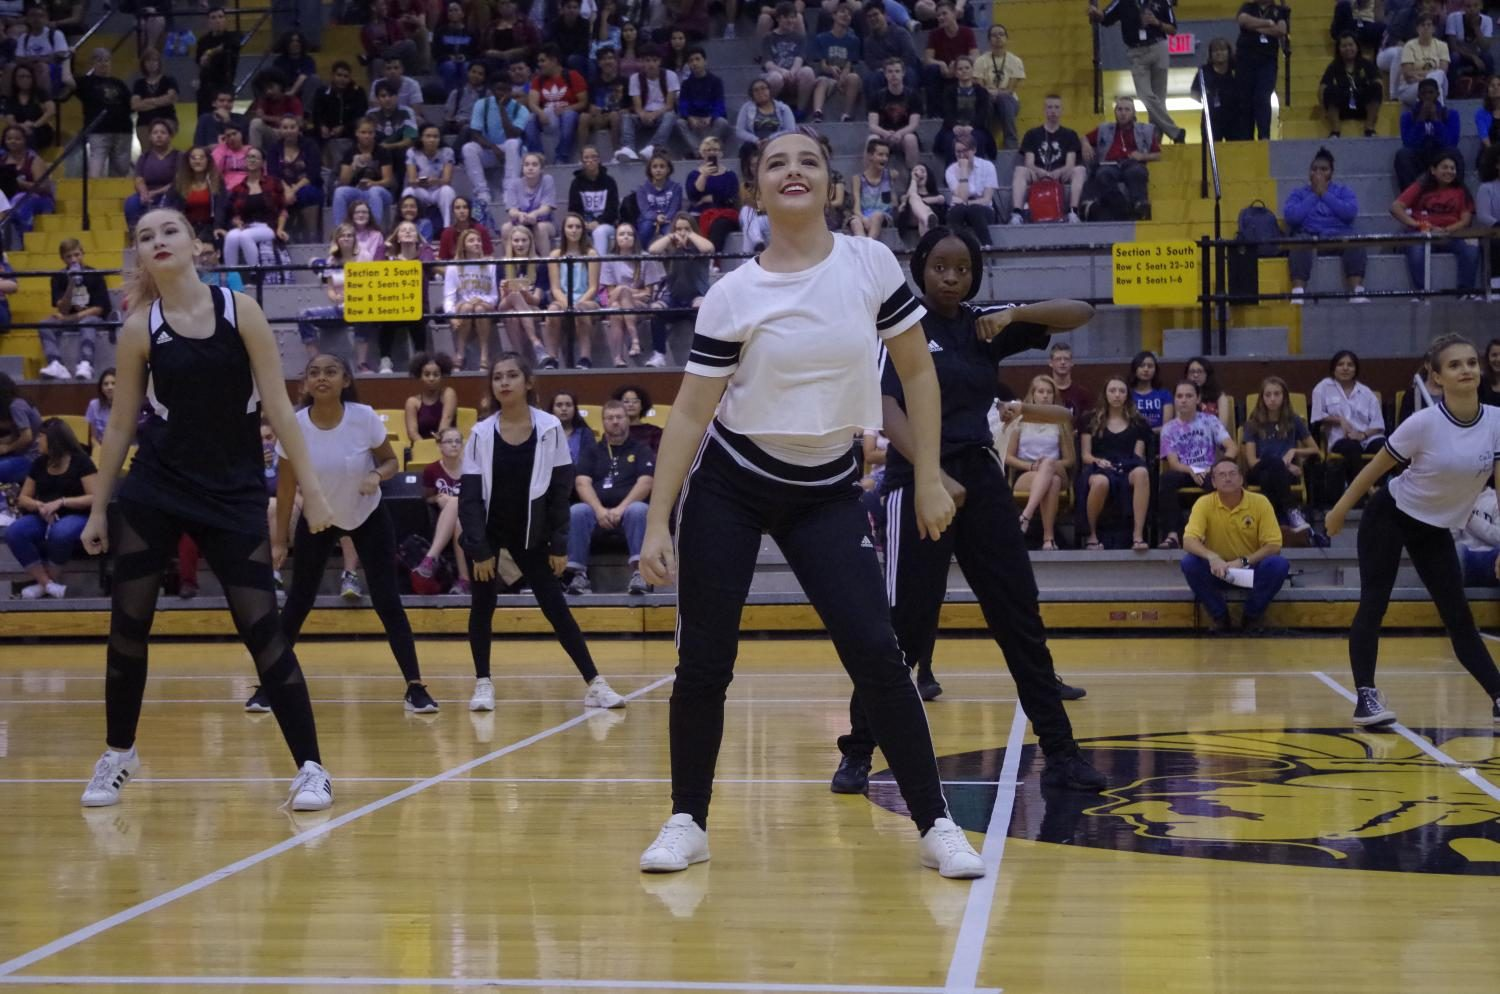 The+dance+team+performs+at+the+pep+rally.+